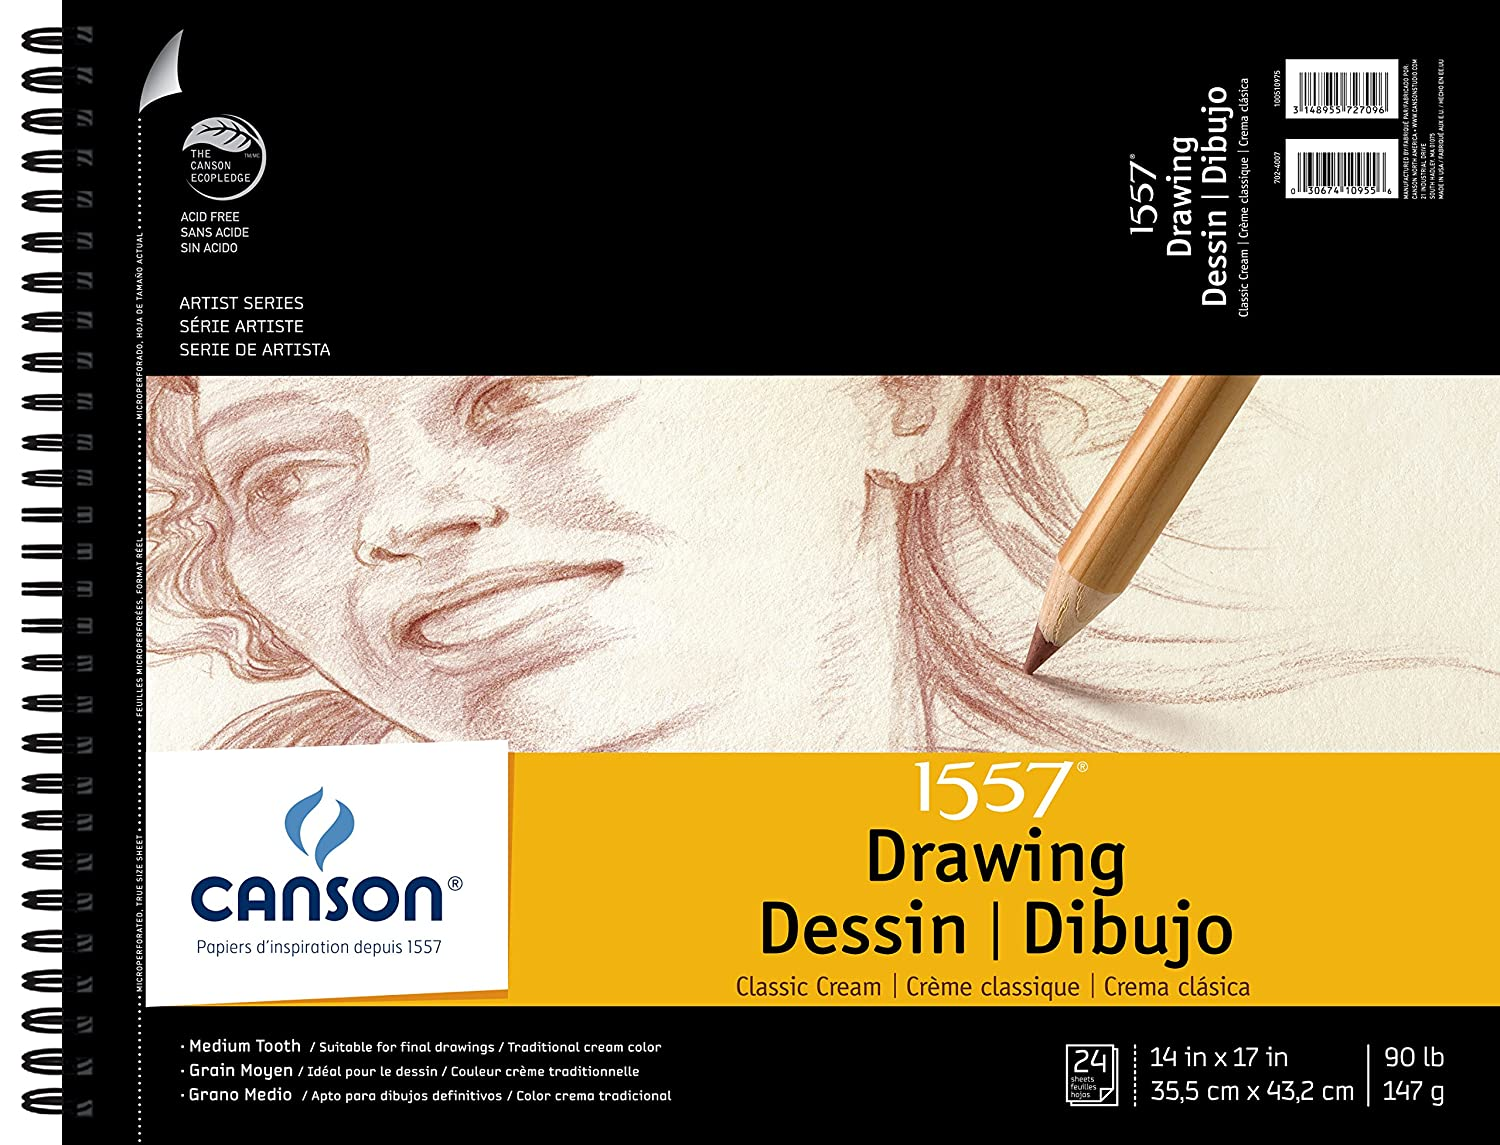 Canson Artist Series 1557 Cream Drawing Paper Pad for Pen, Ink and Graphite Pencil, Top Wire Bound, 90 Pound, 9 x 12 Inch, Cream, 24 Sheets CANSON Inc 100510973